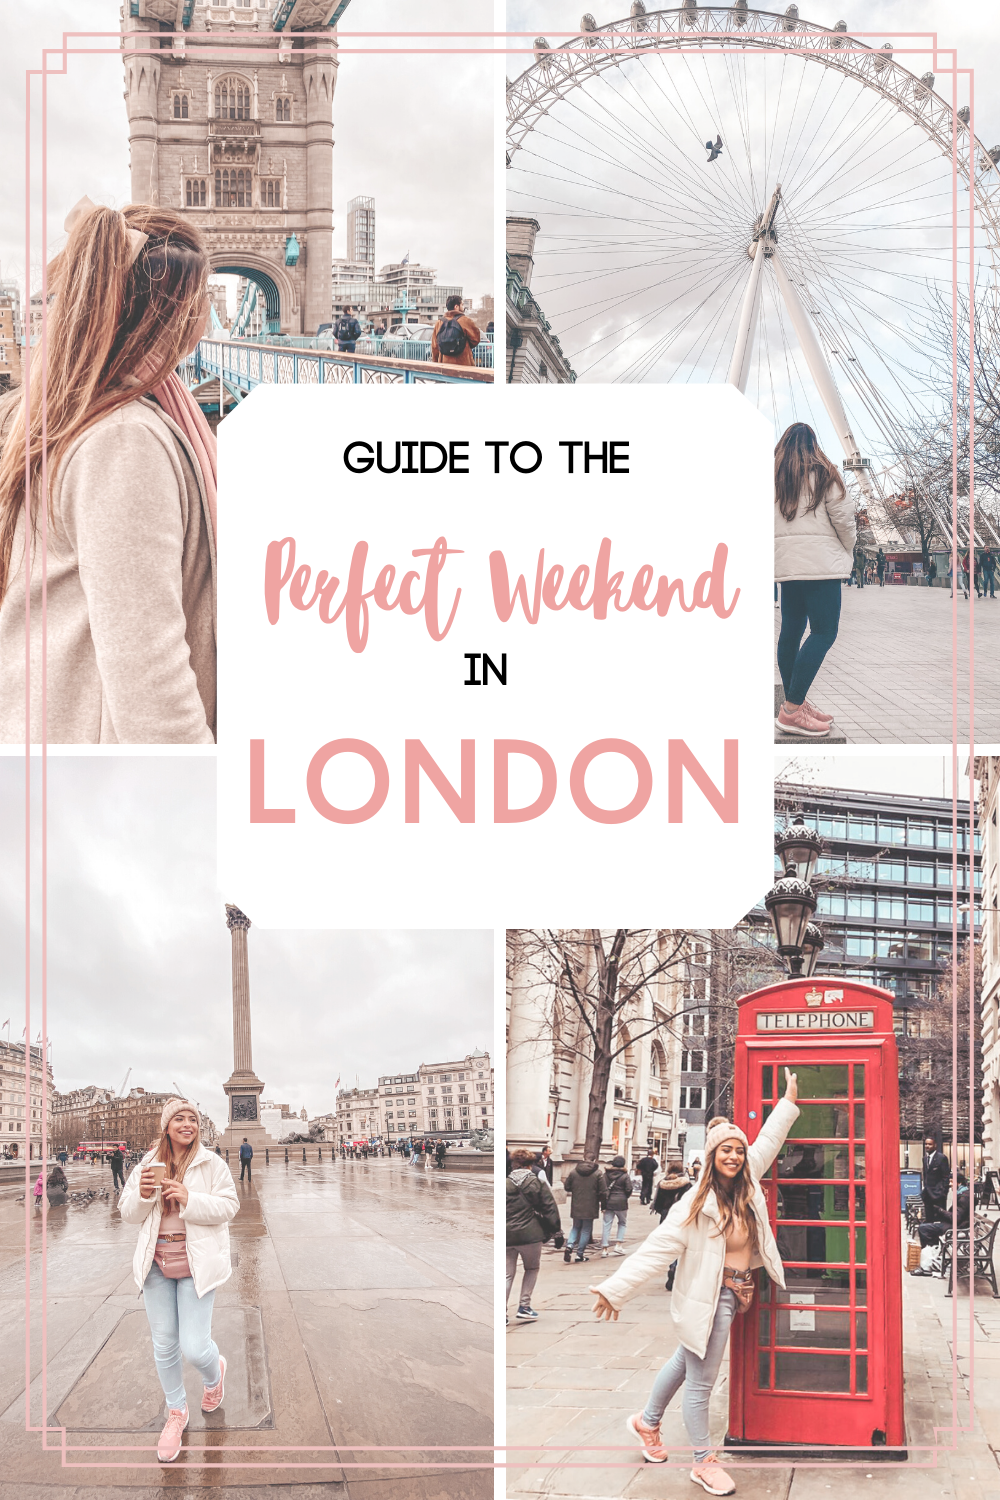 Guide to the Perfect Weekend in London! A magical city with endless activities, great culinary scene, and awesome nightlife. 3 day itinerary to London, perfect for short trips! #travelguide #travellondon #visitlondon